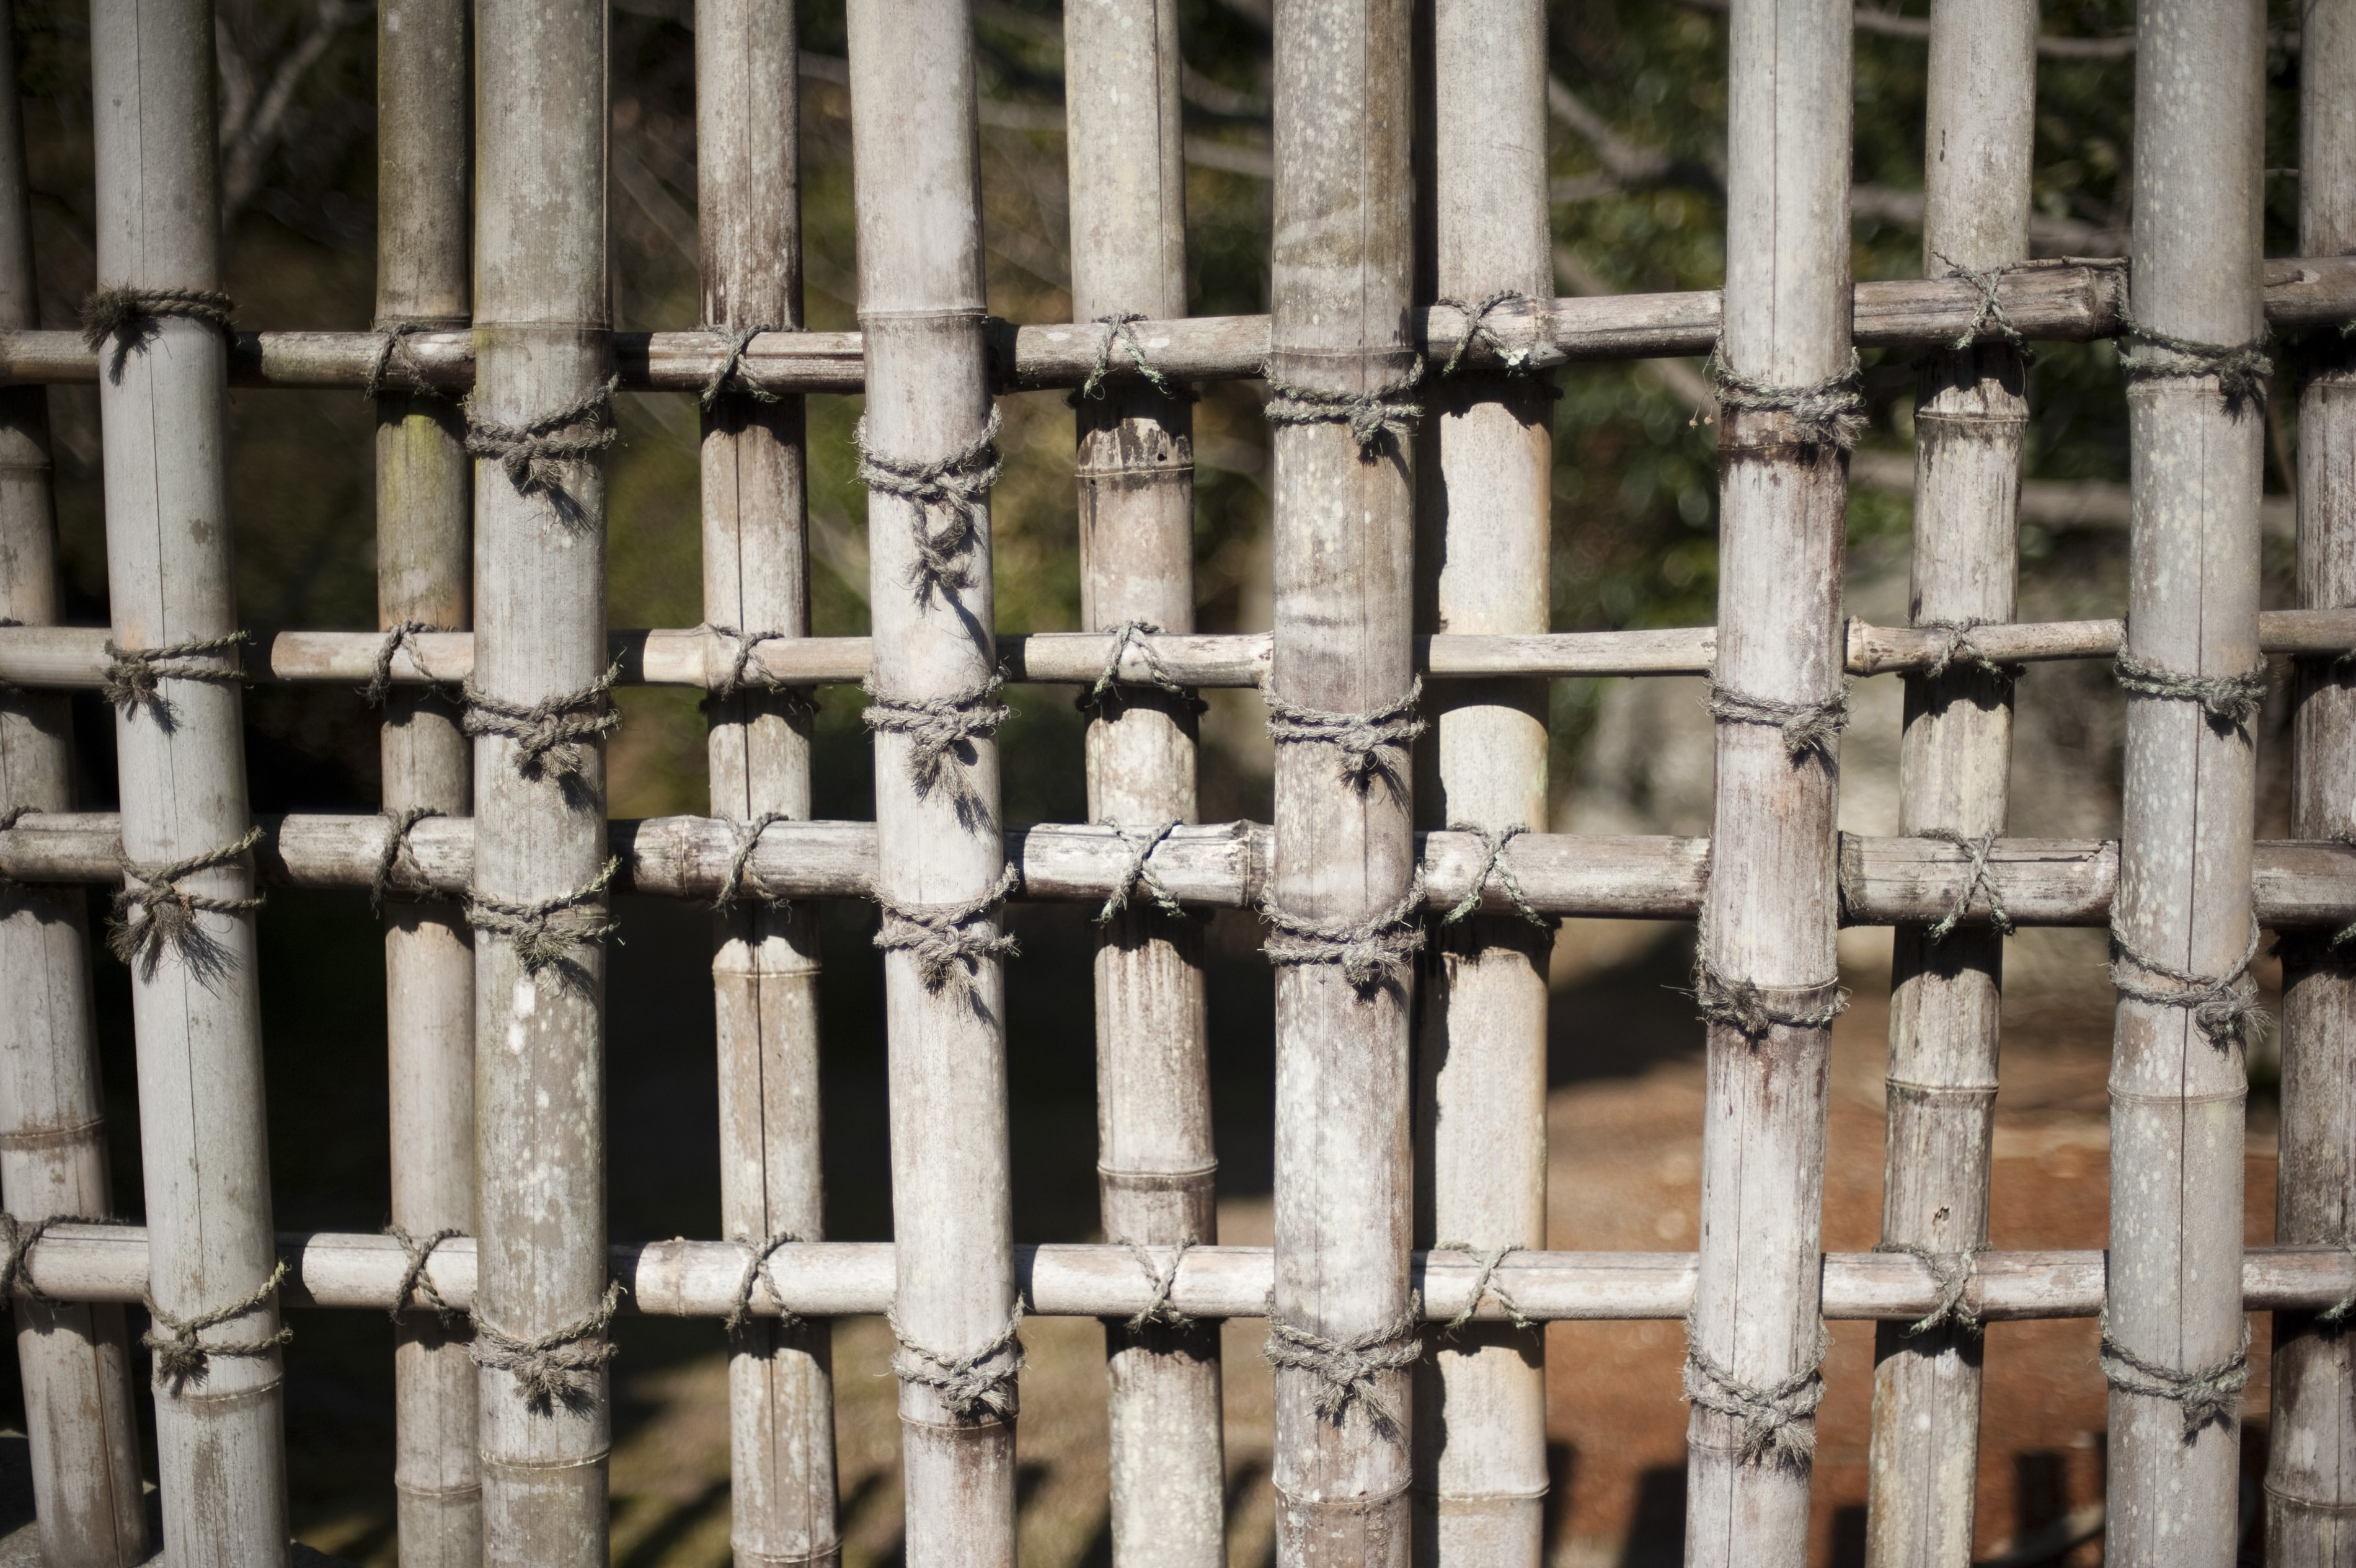 Rustic bamboo garden trellis of weathered dried colums lashed together in a lattice